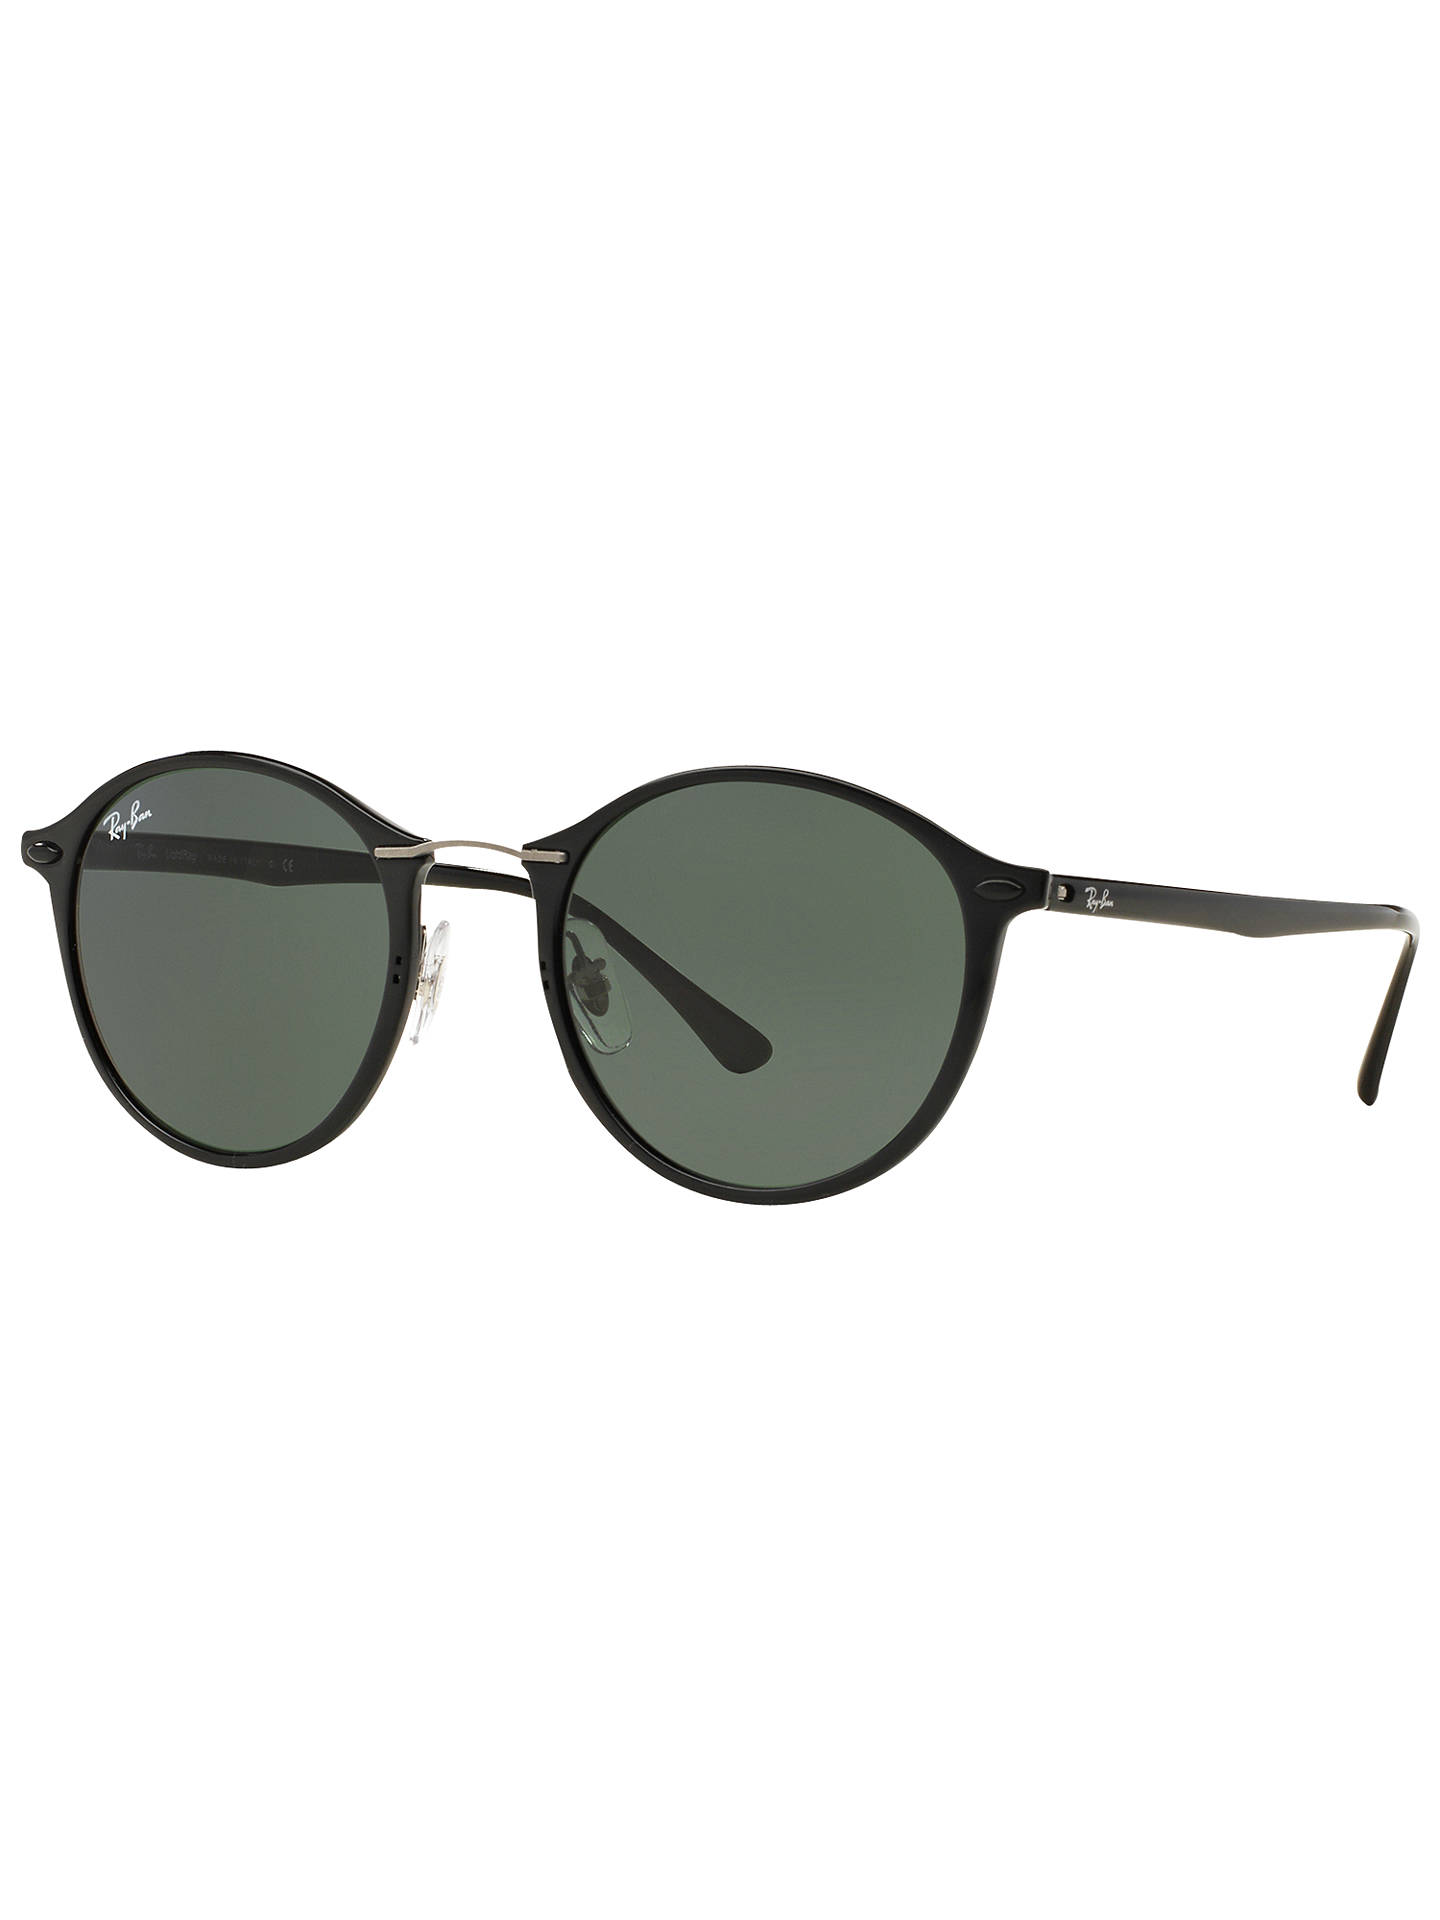 a64e61849e2 50% off ray ban rb4242 sunglasses on model a378b 55dfd  new arrivals buyray ban  rb4242 round sunglasses black dark green online at johnlewis c7333 5d1a7